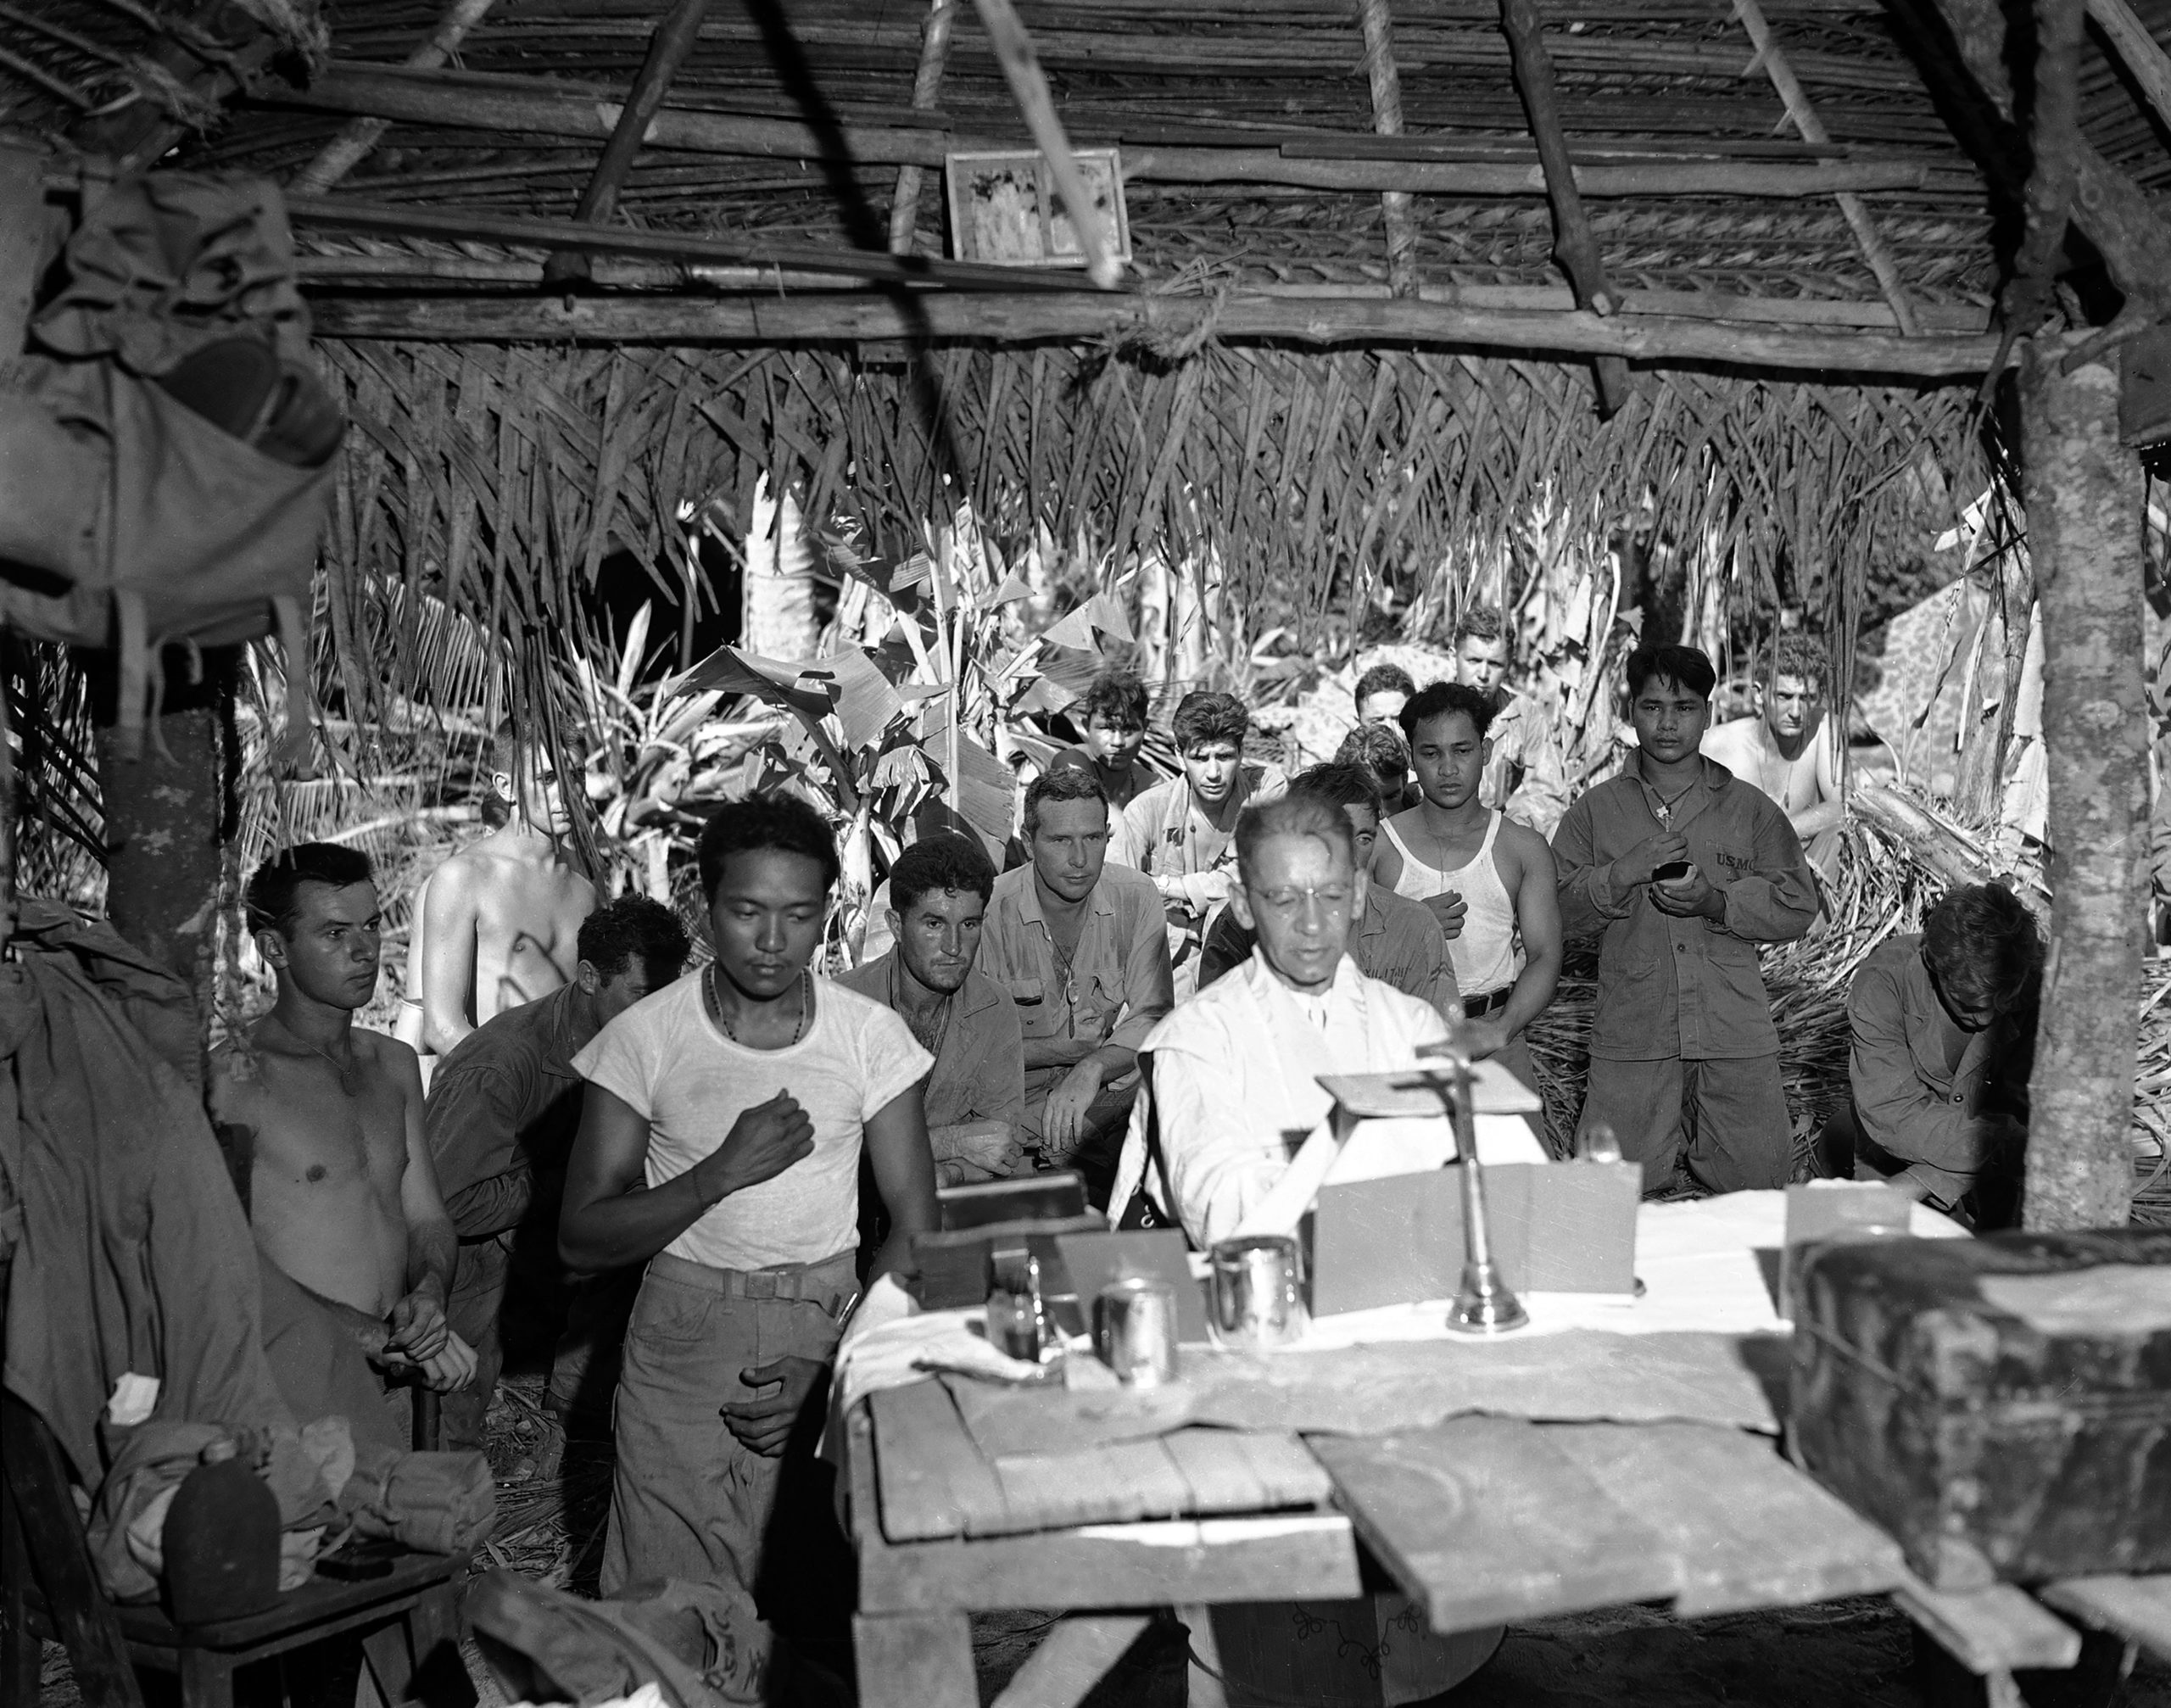 FILE - This Nov. 1, 1944 file photo shows the first religious service on Guam after U.S. landings are attended by soldiers, Nov. 1, 1944. An indigenous Chamorro serves as altar boy in this improvised hut. The 1941 Japanese invasion of Guam, which happened on the same December day as the attack on Hawaii's Pearl Harbor, set off years of forced labor, internment, torture, rape and beheadings. More than 75 years later, thousands of people on Guam, a U.S. territory, are expecting to get long-awaited compensation for their suffering at the hands of imperial Japan during World War II. (AP Photo/Joe Rosenthal, File)